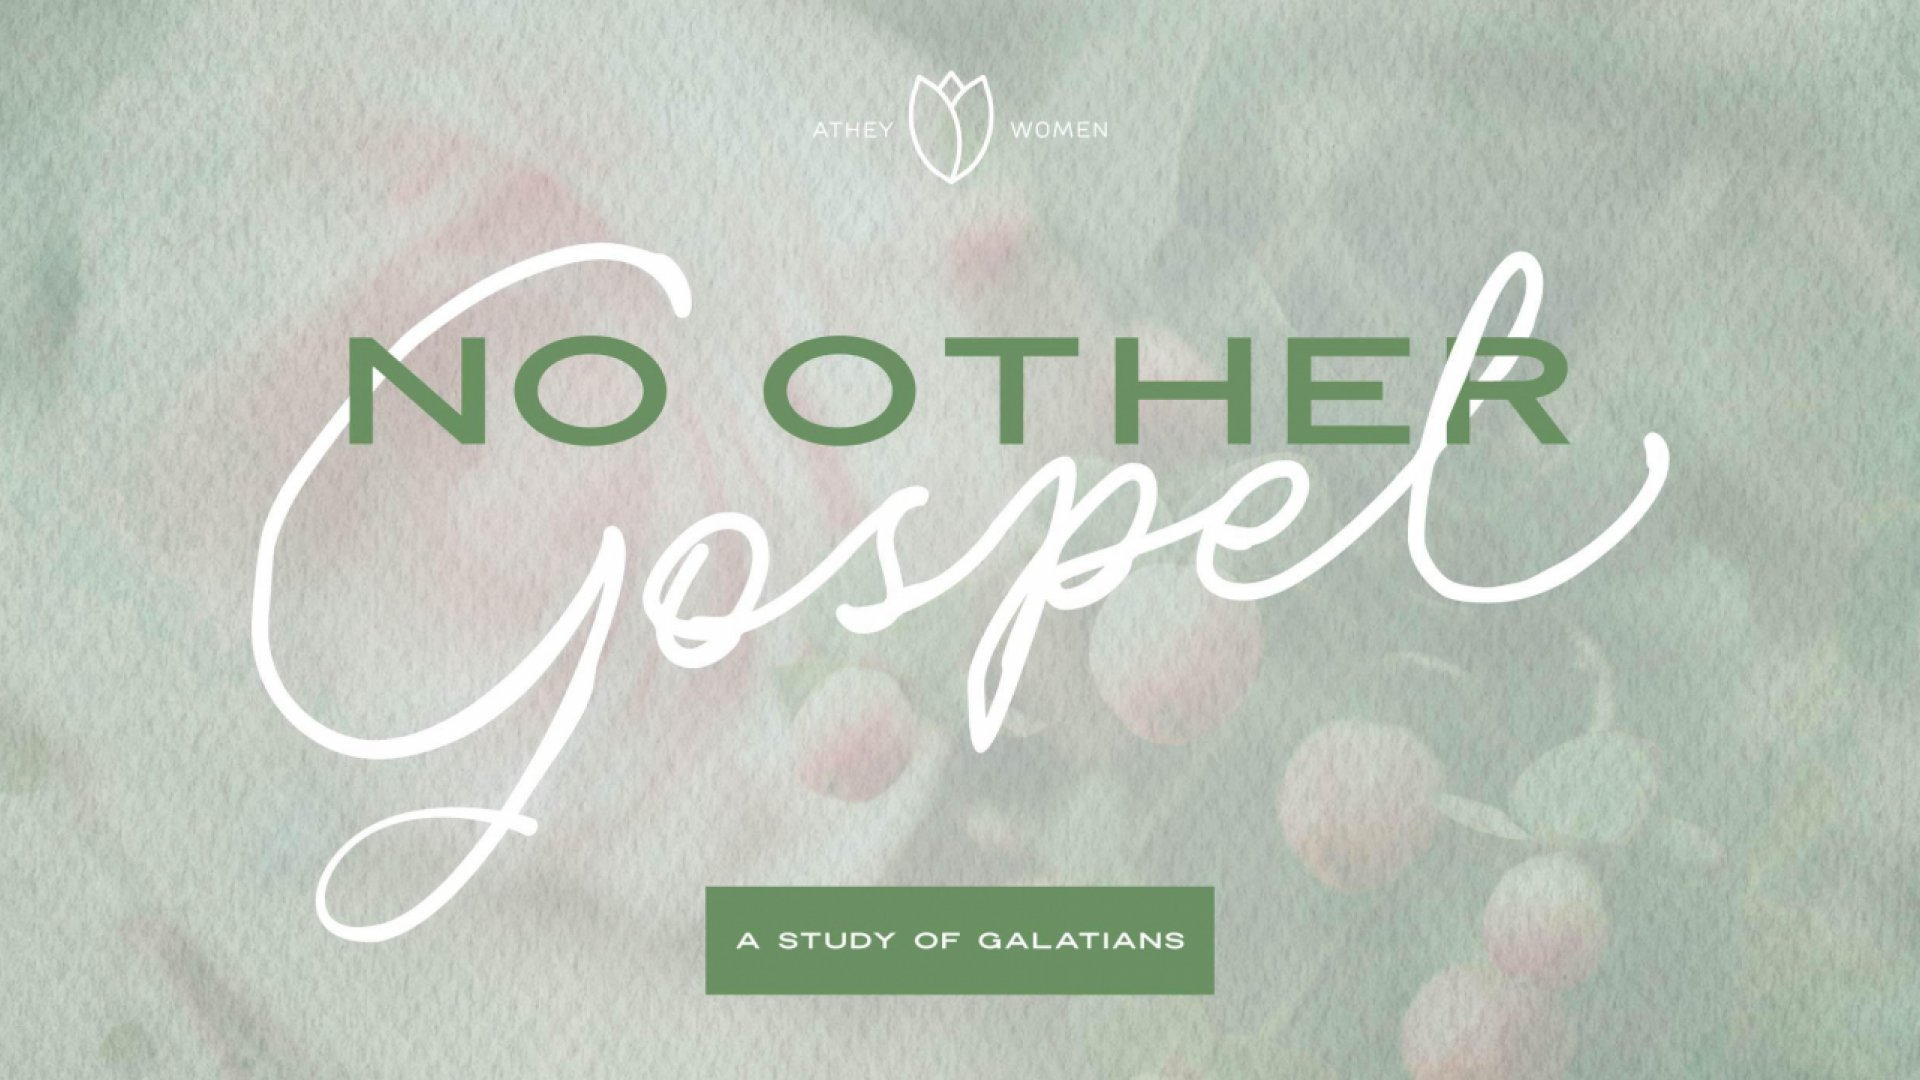 Teaching artwork for No Other Gospel: A Study of Galatians